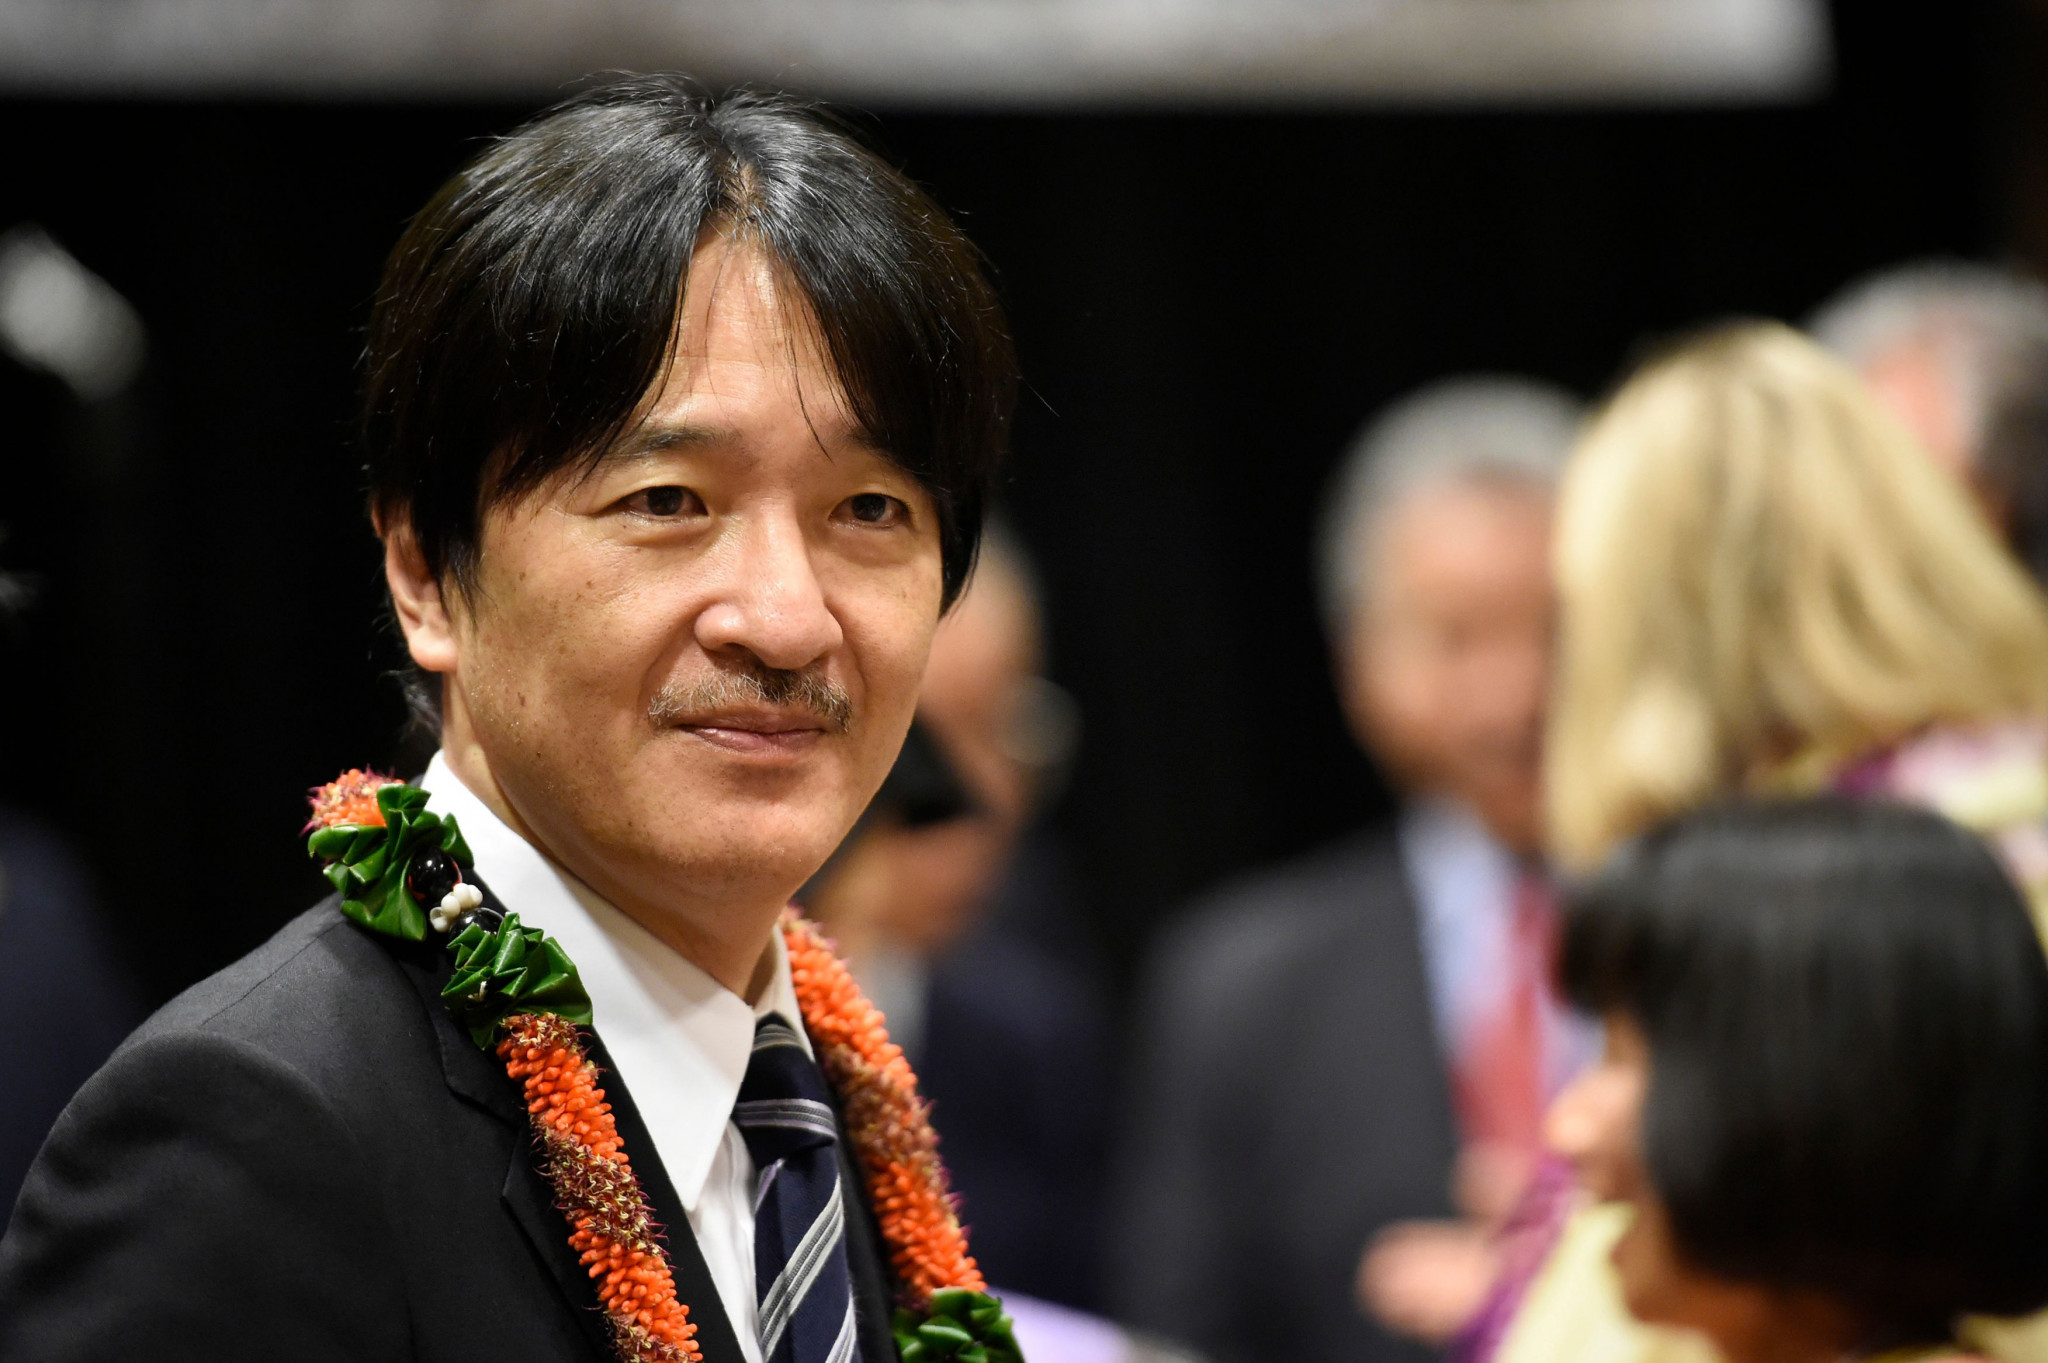 Prince Akishino appointed as honorary patron of 2019 Rugby World Cup